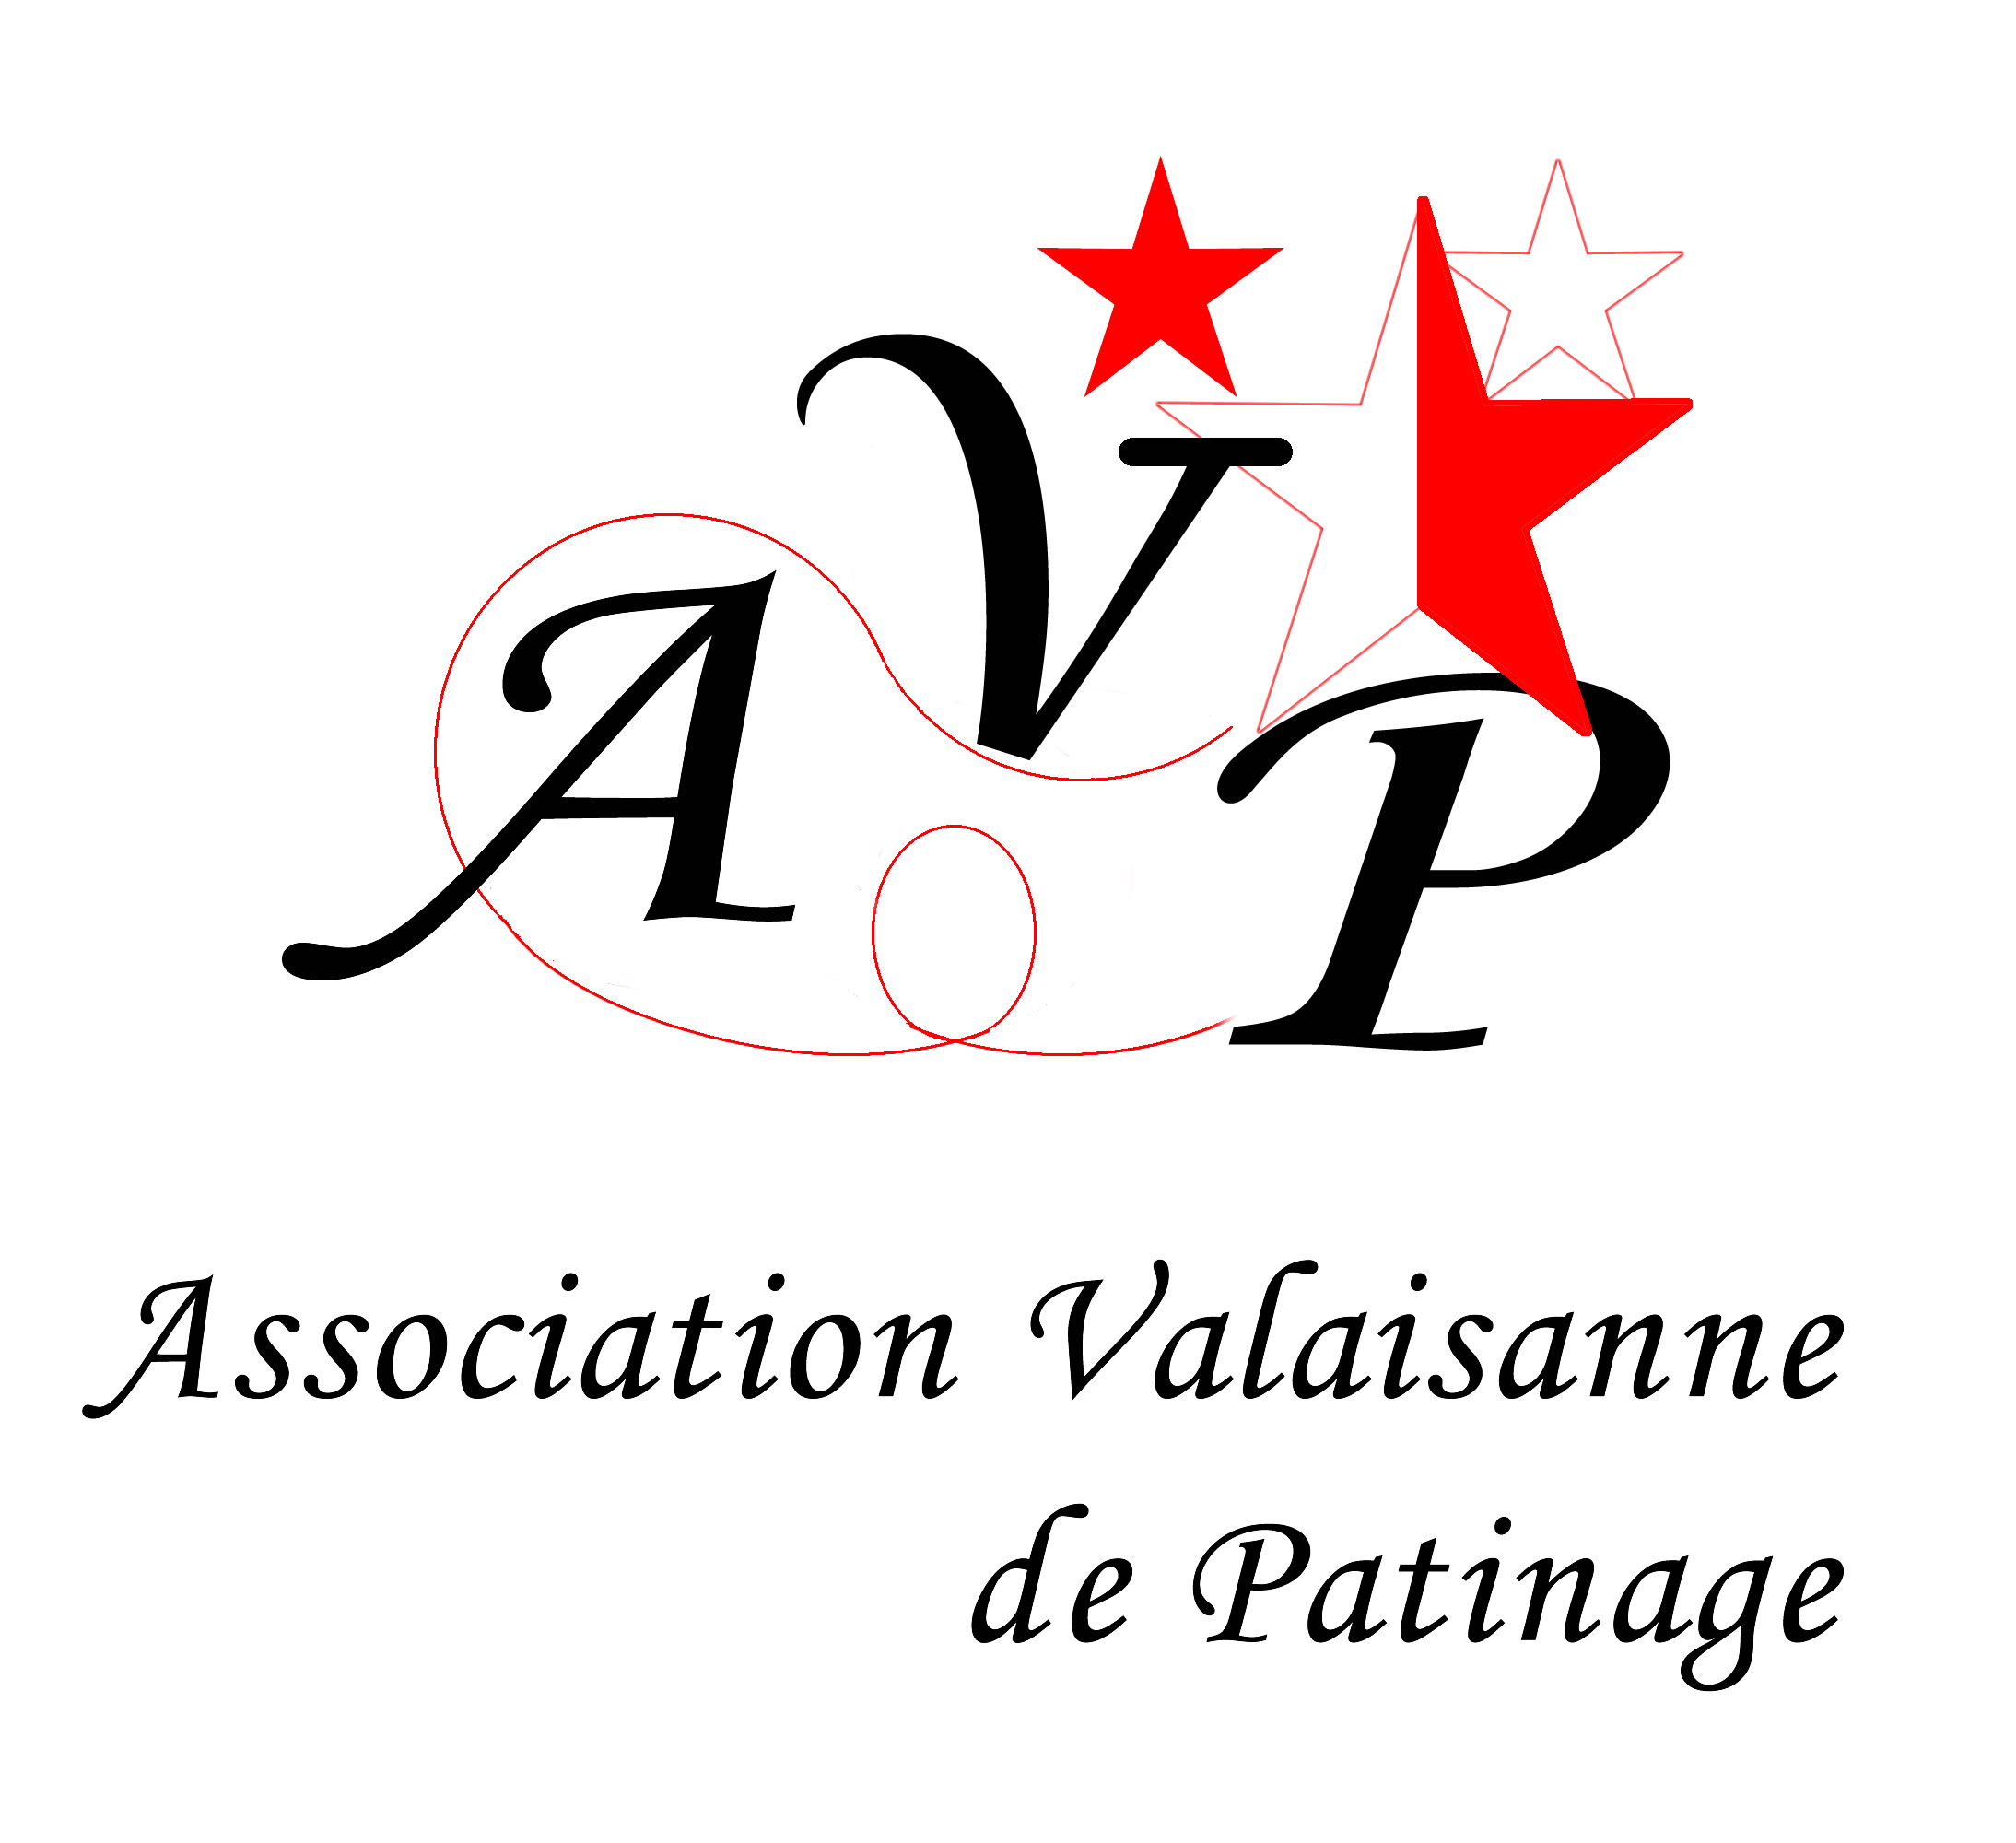 Association valaisanne de patinage